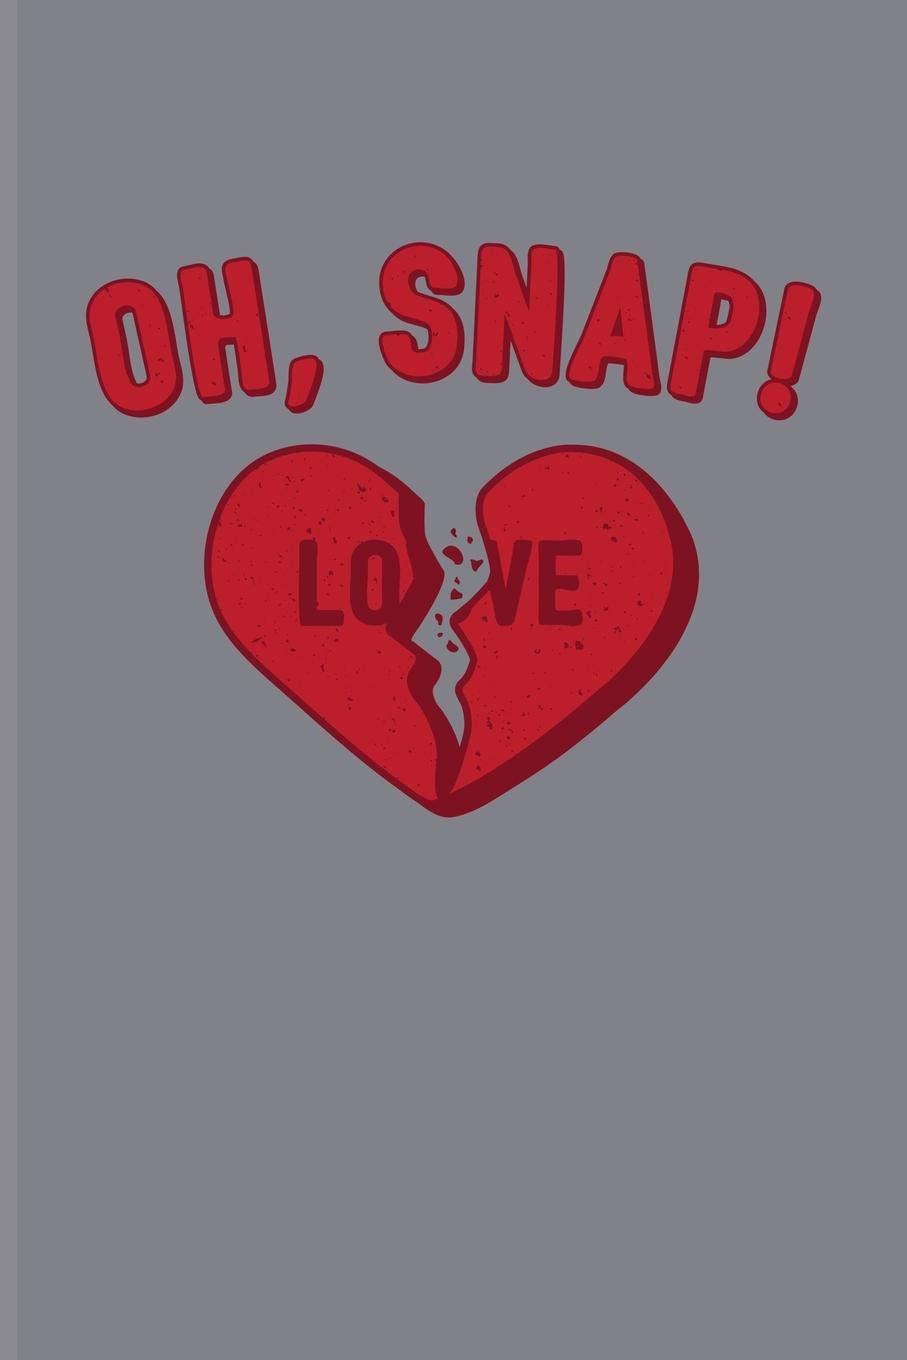 Buy Oh Snap Love Short Funny Love Quote Journal For Anti Valentines Day Loneliness Party Happy Single Life Family Fans 6x9 100 Blank Graph Paper Pages Book Online At